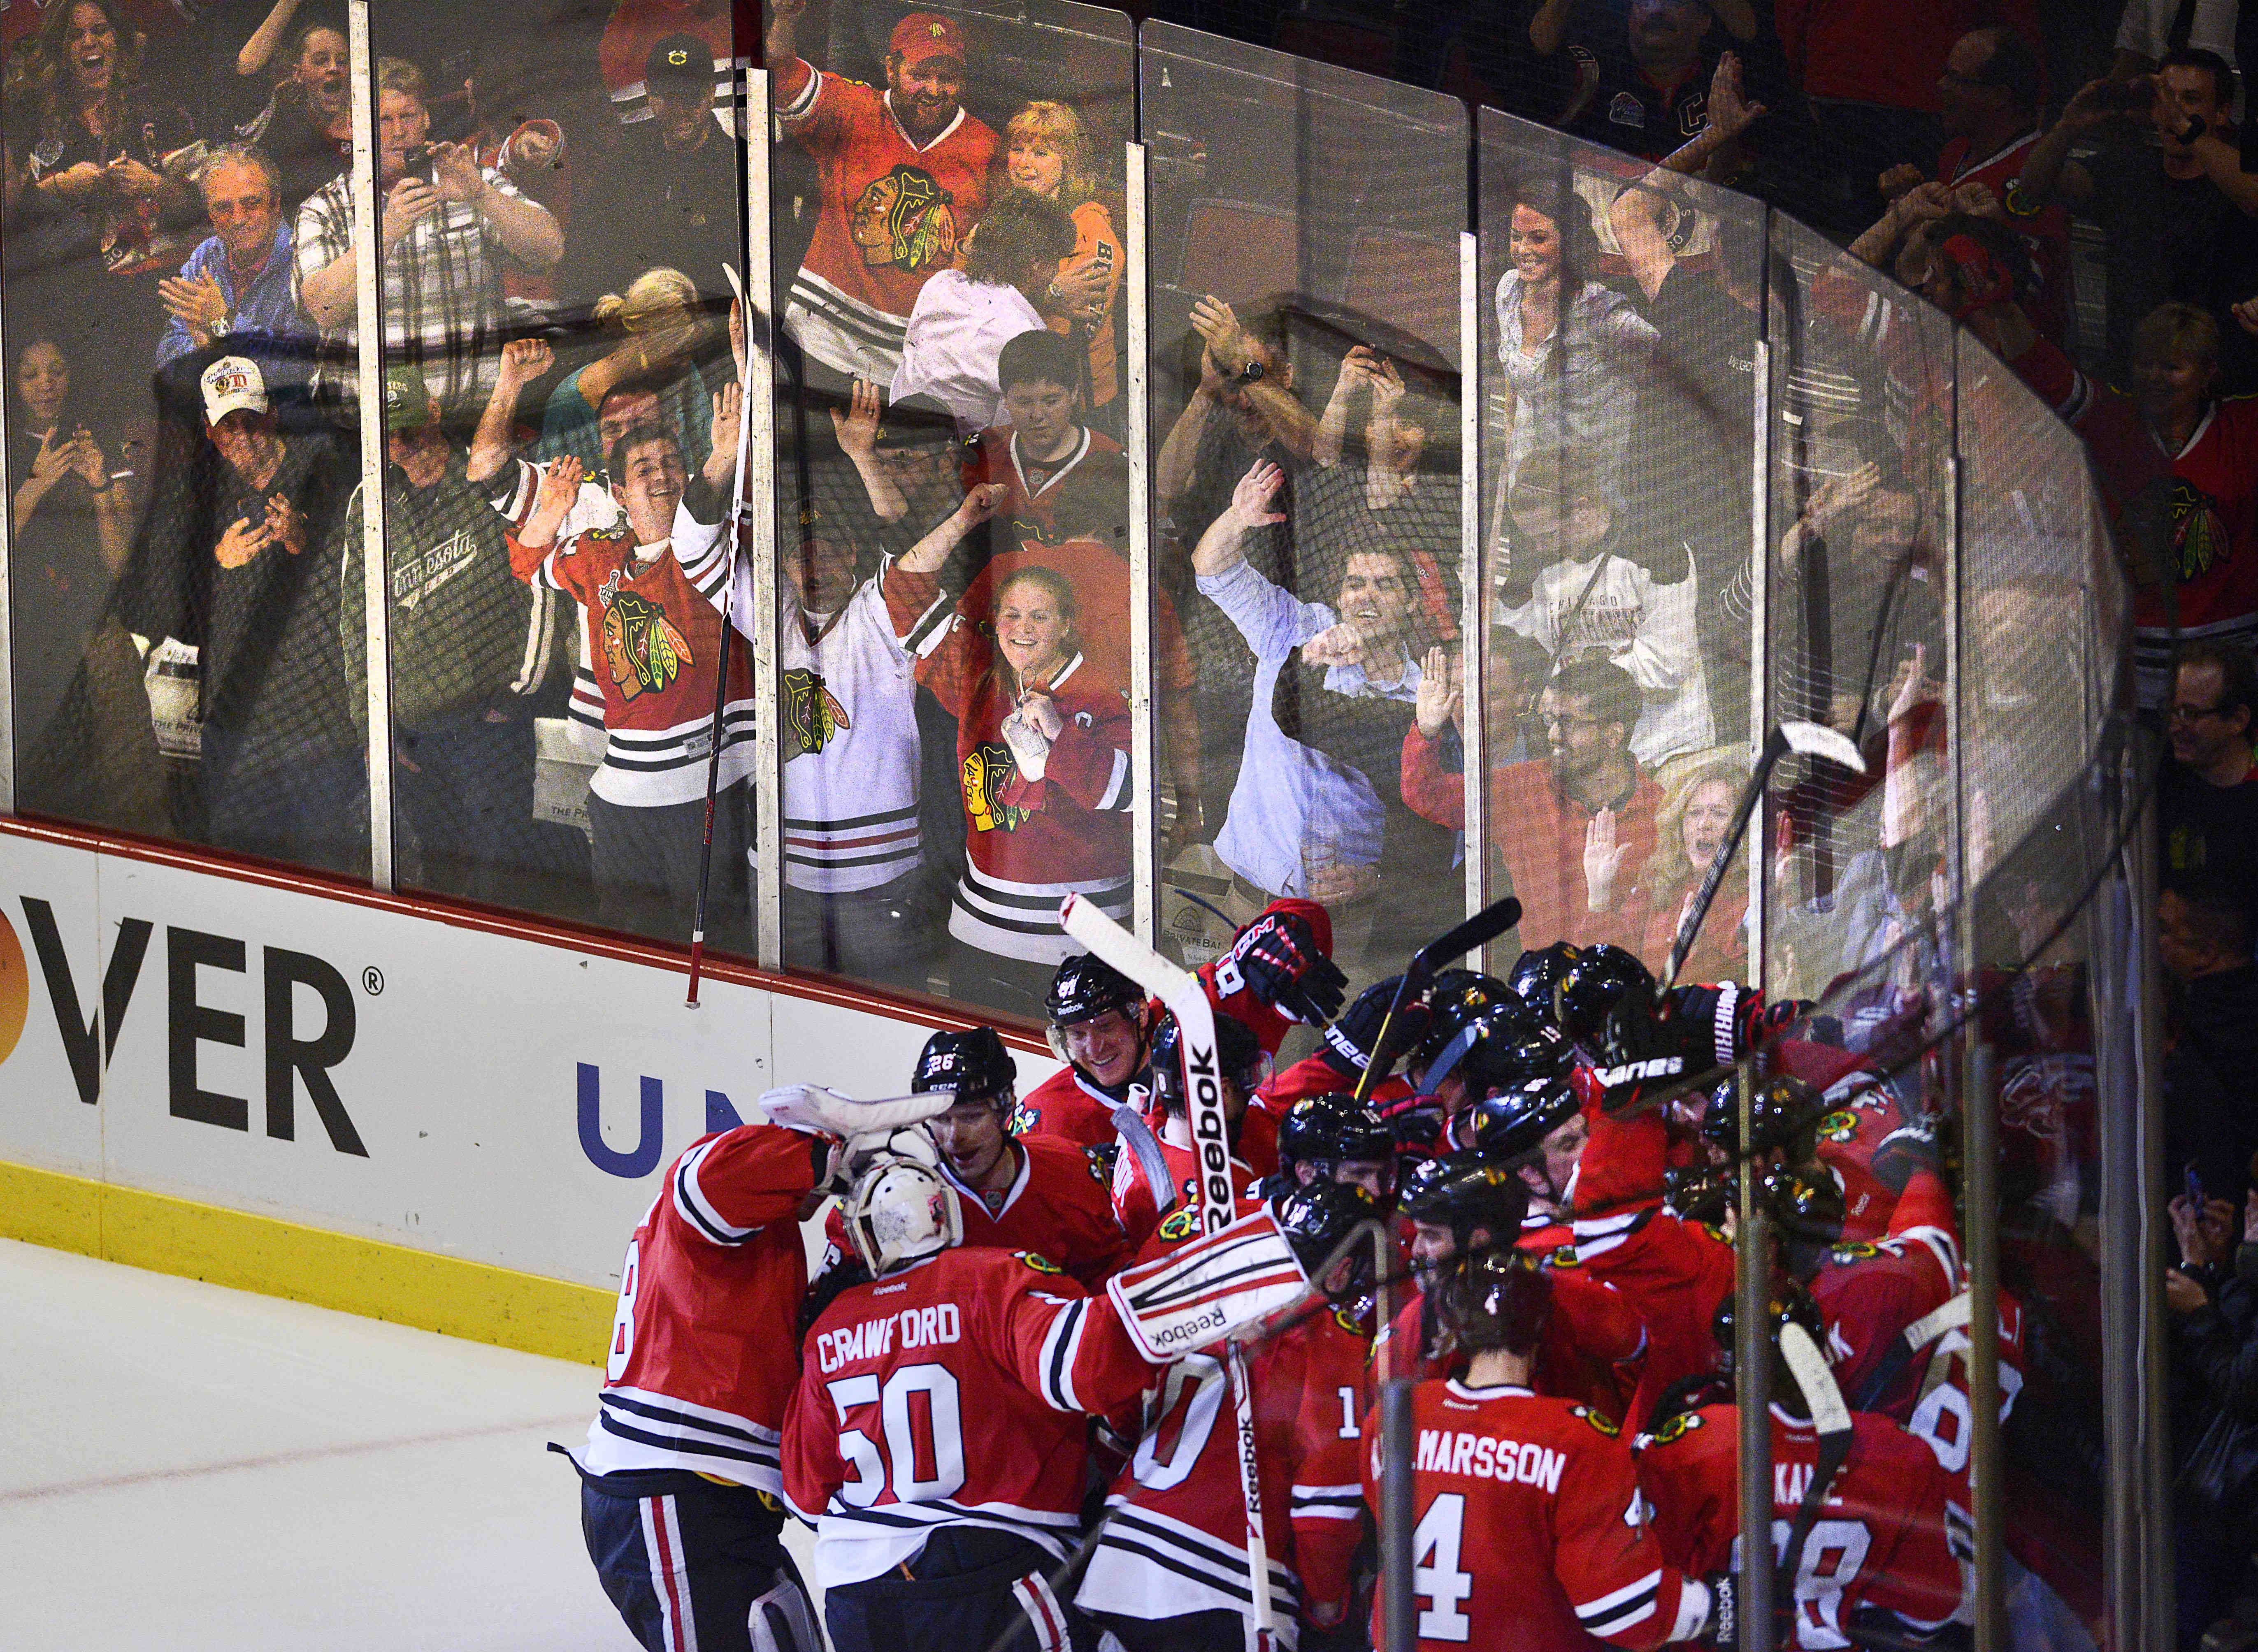 Fans celebrate behind the glass as the Chicago Blackhawks celebrate Bryan Bickell's game winner in overtime against the Minnesota Wild Tuesday in Game 1 of the Western Conference first-round playoff series at the United Center in Chicago.